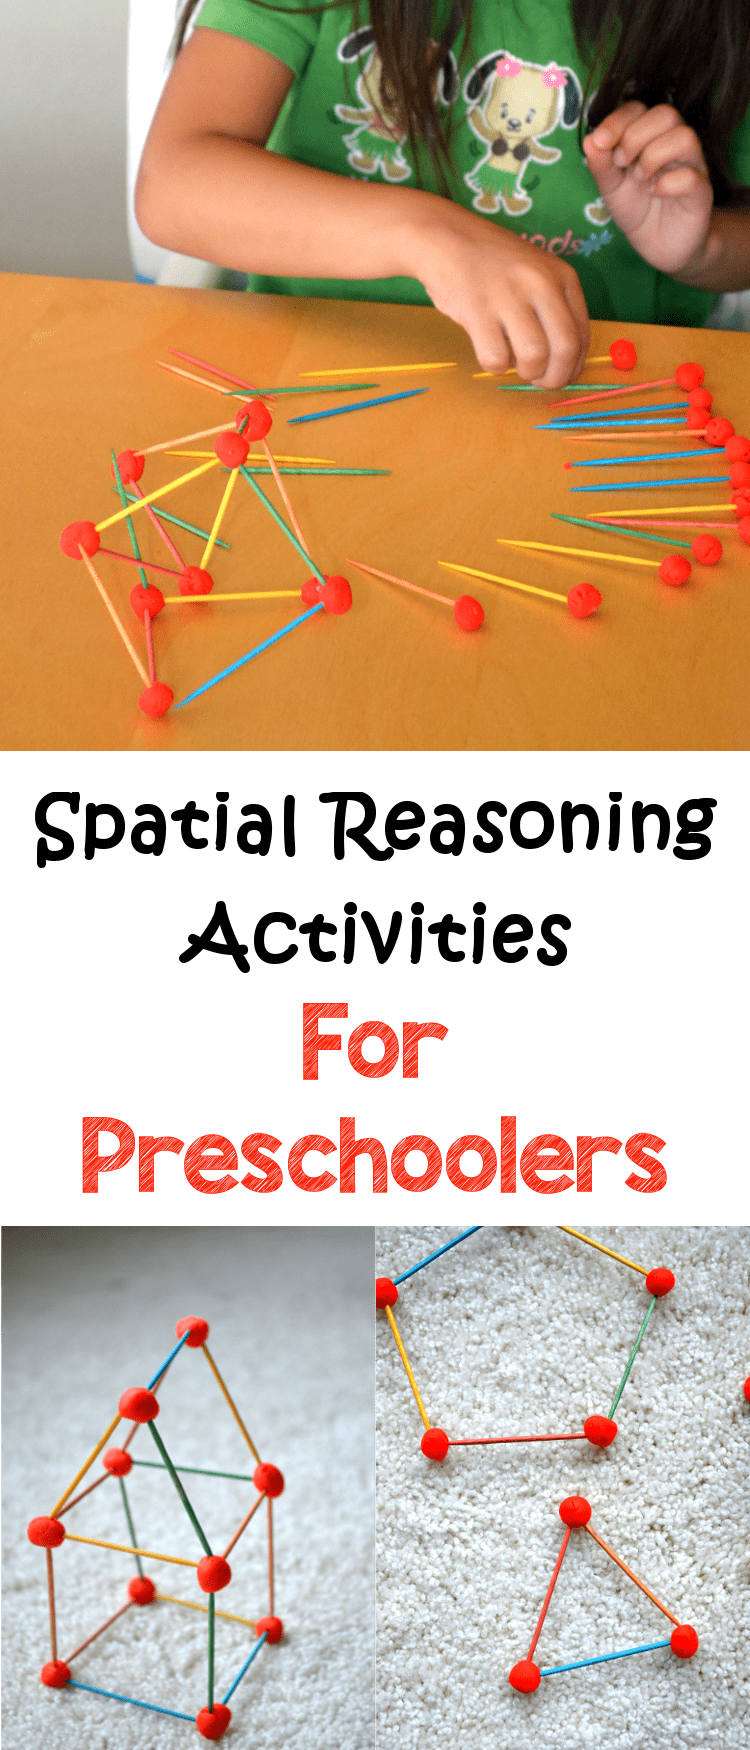 Child uses toothpicks and playdoh to make various 3D shapes, a spatial reasoning activities for preschoolers